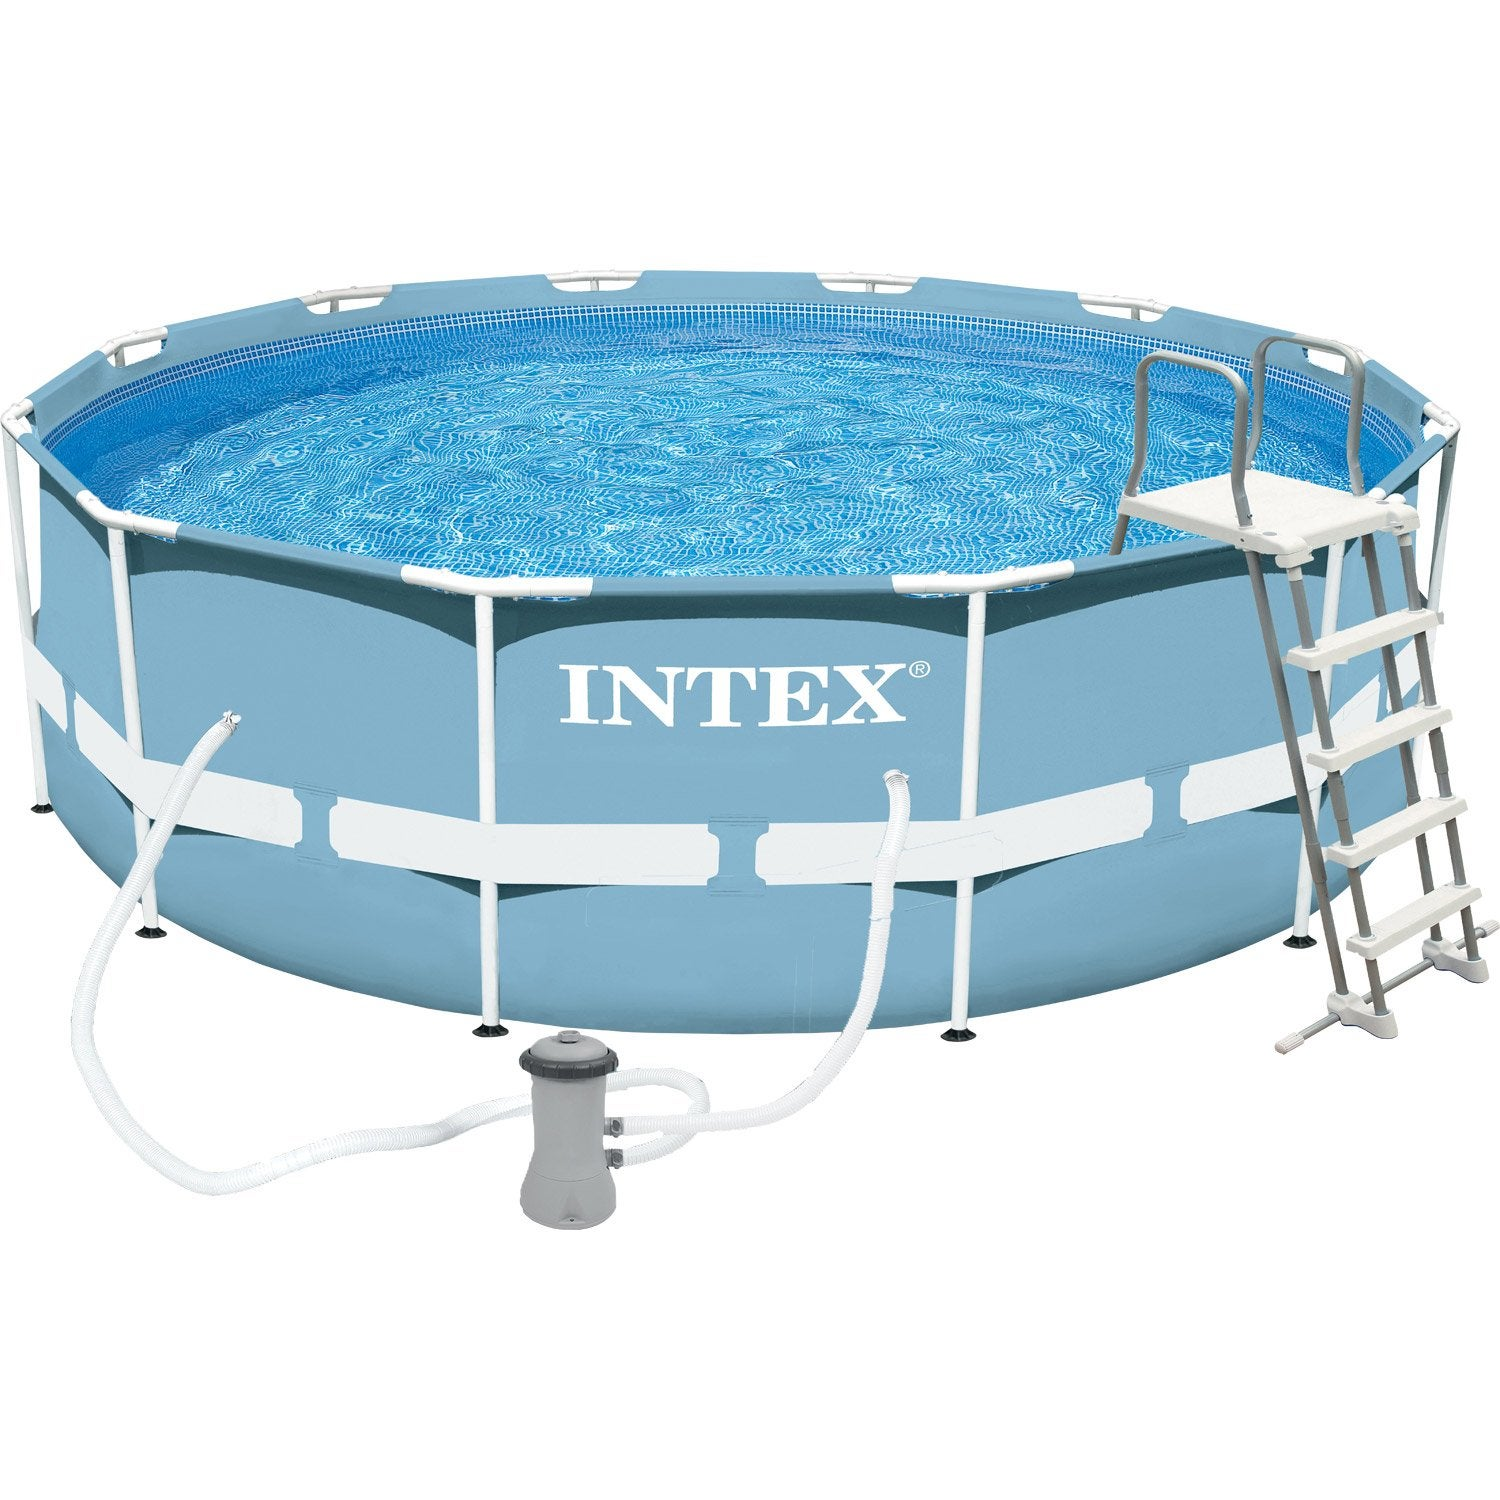 Piscine hors sol autoportante tubulaire prism frame intex for Piscine intex hors sol